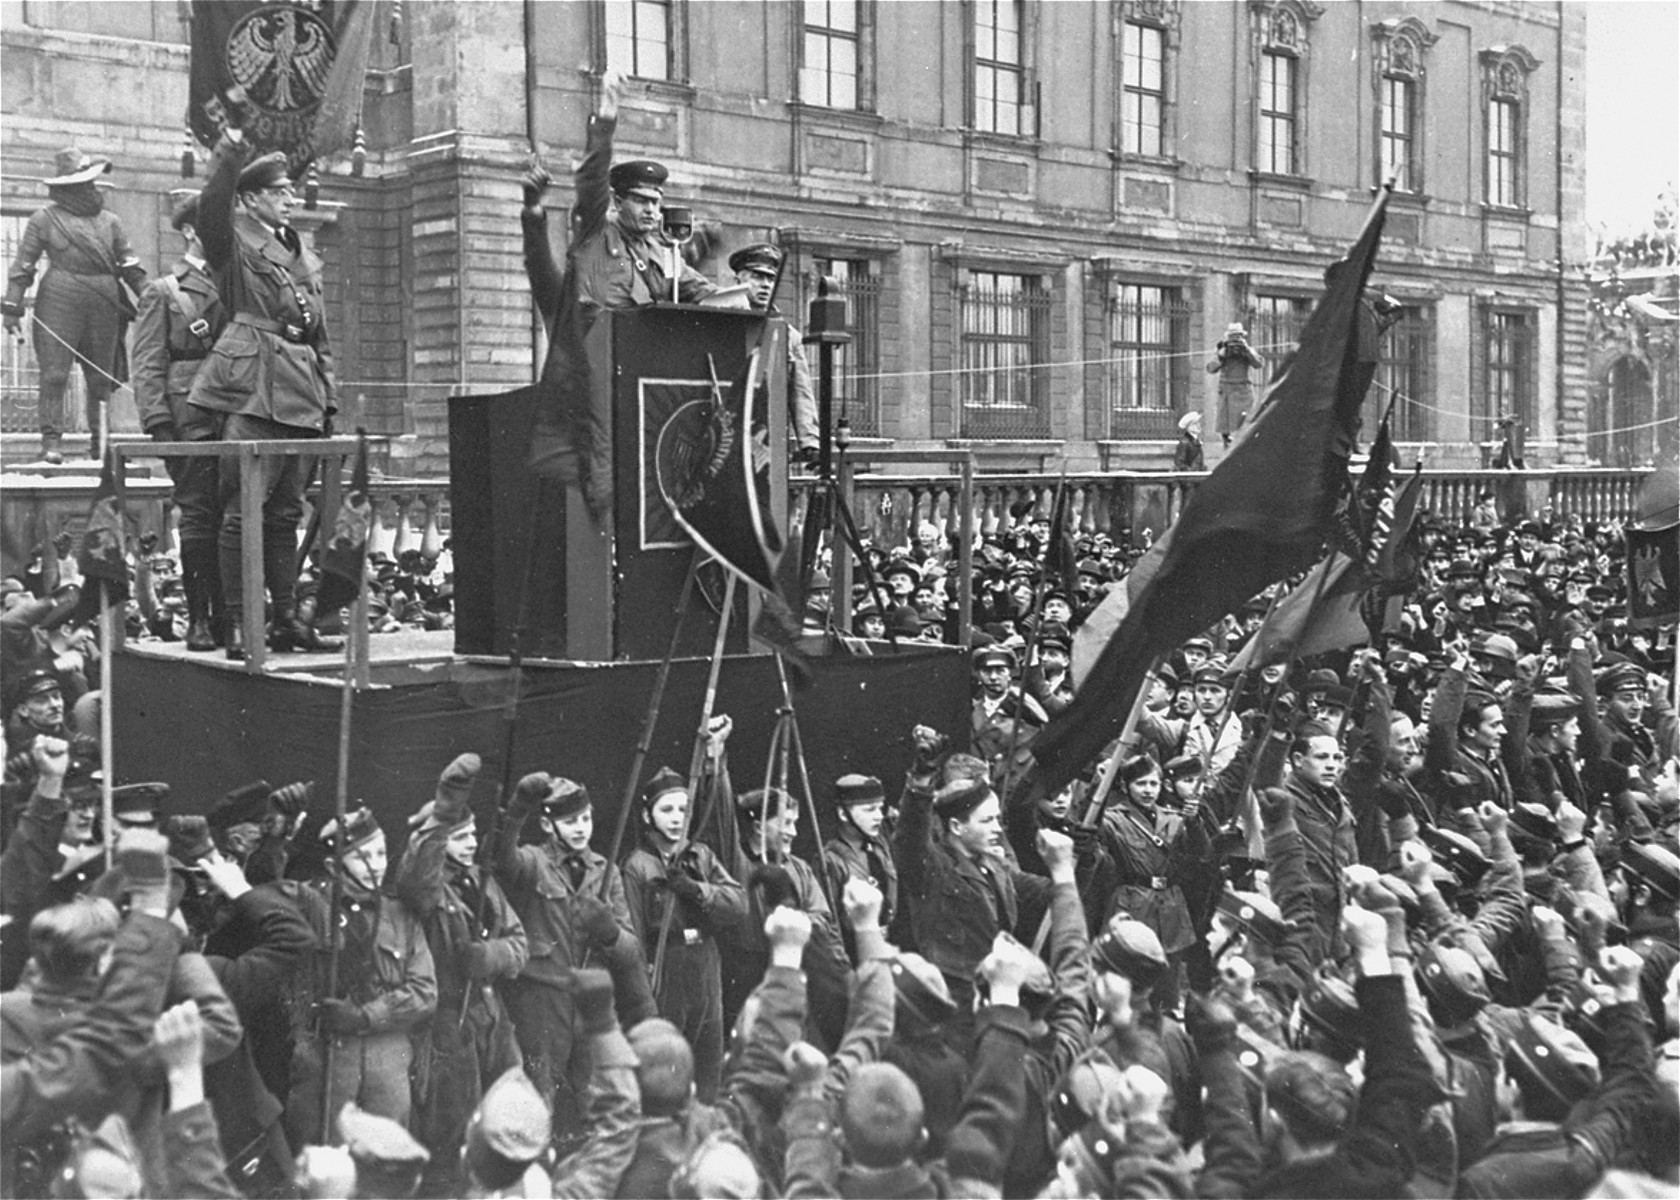 Members of the Reichsbanner cheer during an anti-Nazi speech delivered at a rally in the Berlin Lustgarten.